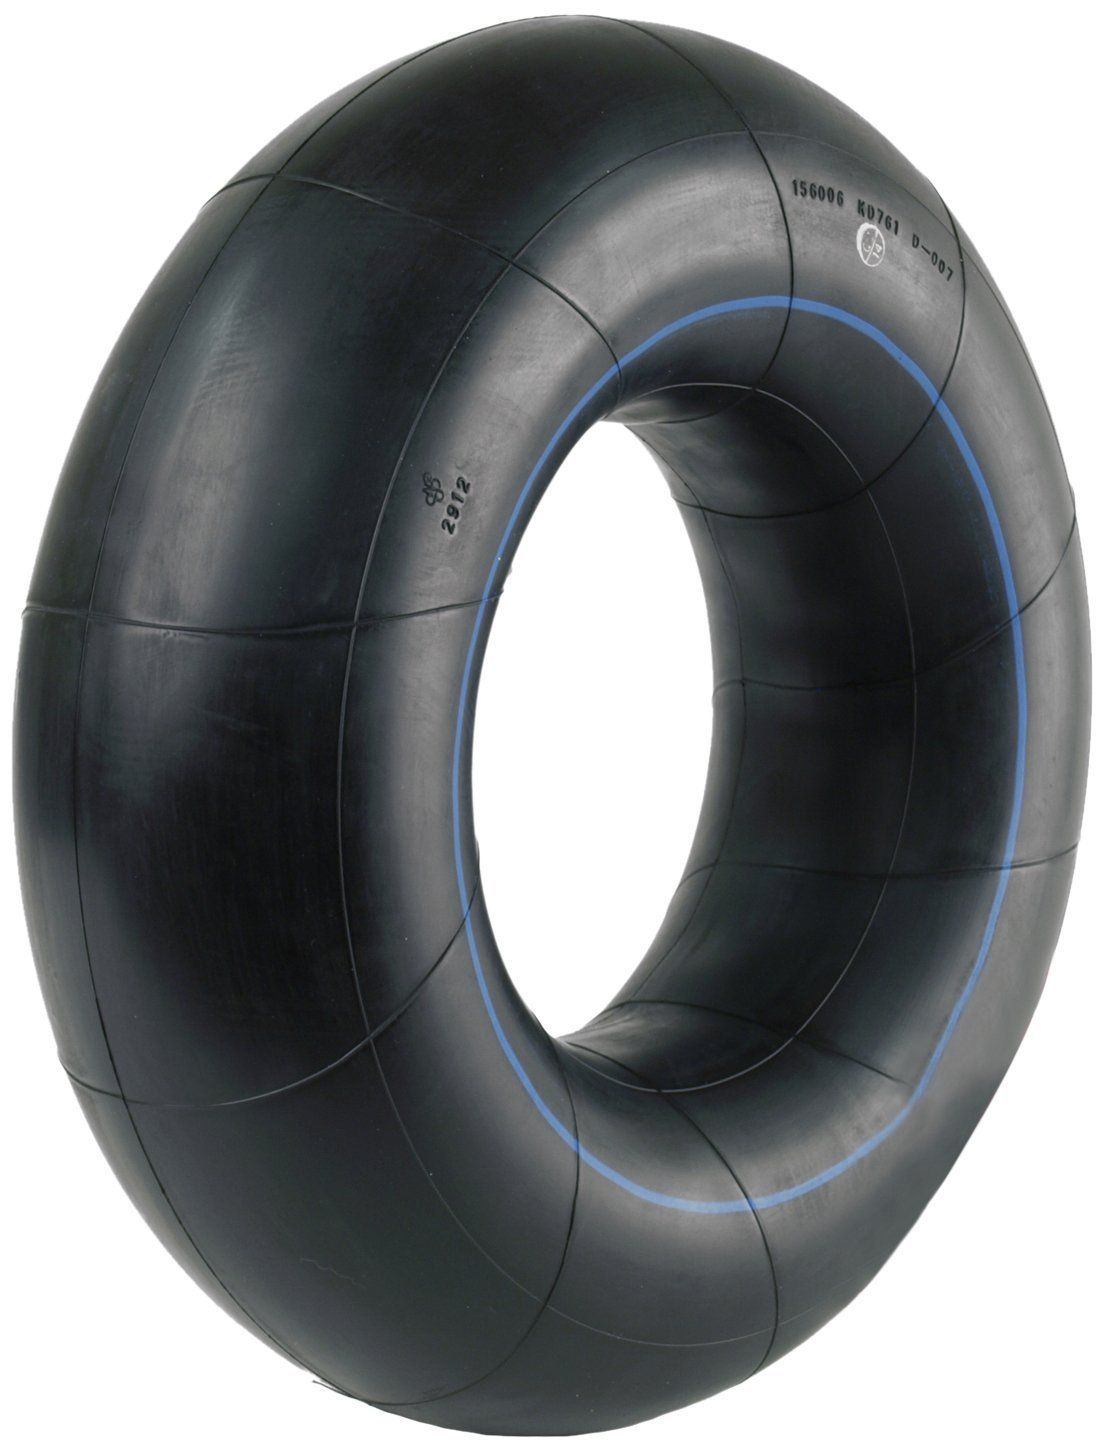 Martin Wheel T1008k Butyl Rubber Straight Inner Tube 20x1000 8 Butyl Rubber Wheelbarrow Tires Tractor Tire